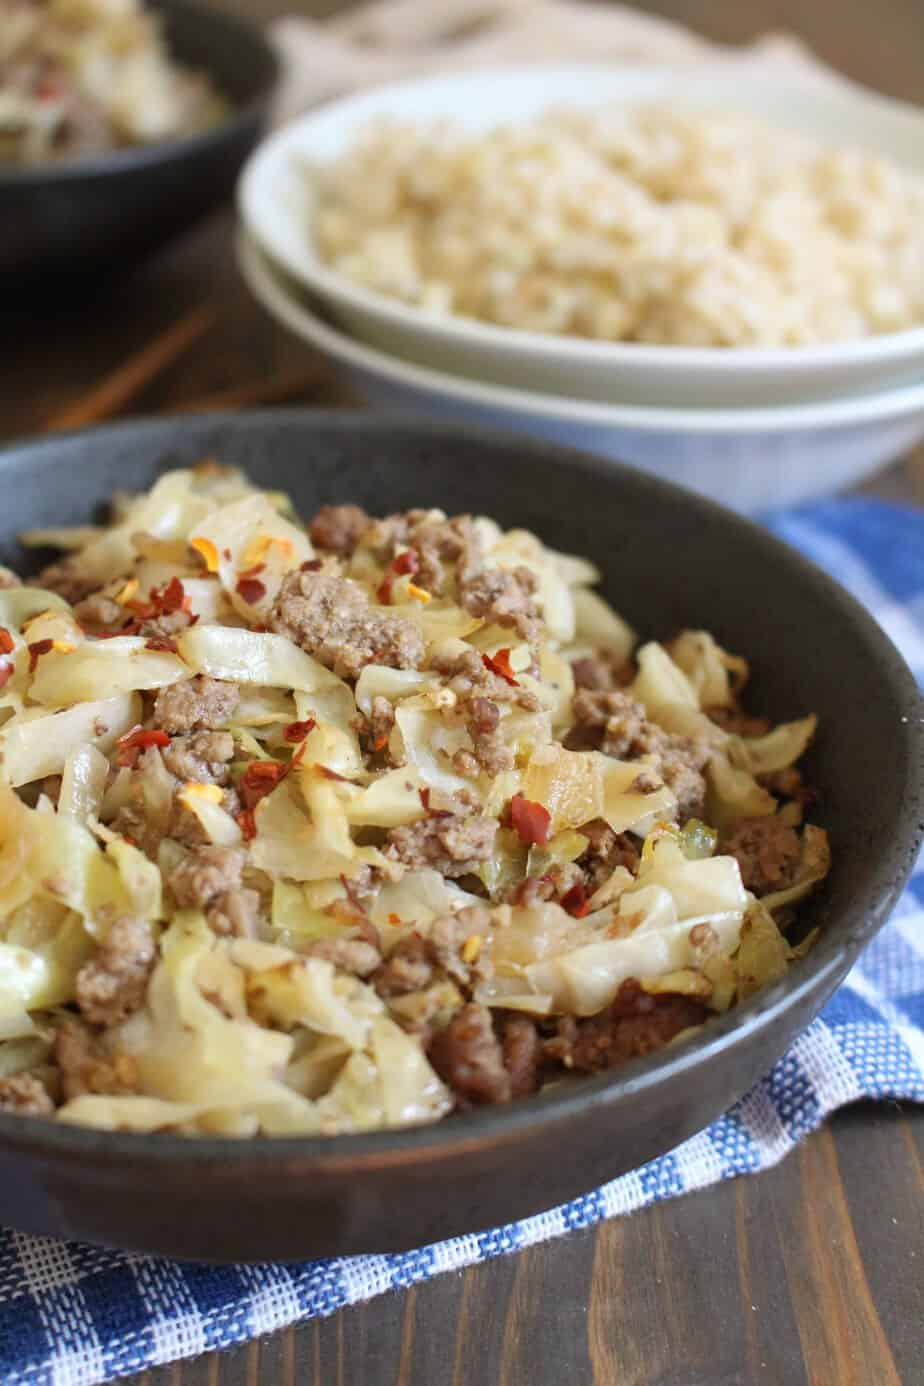 ginger-beef-and-cabbage-frugal-nutrition